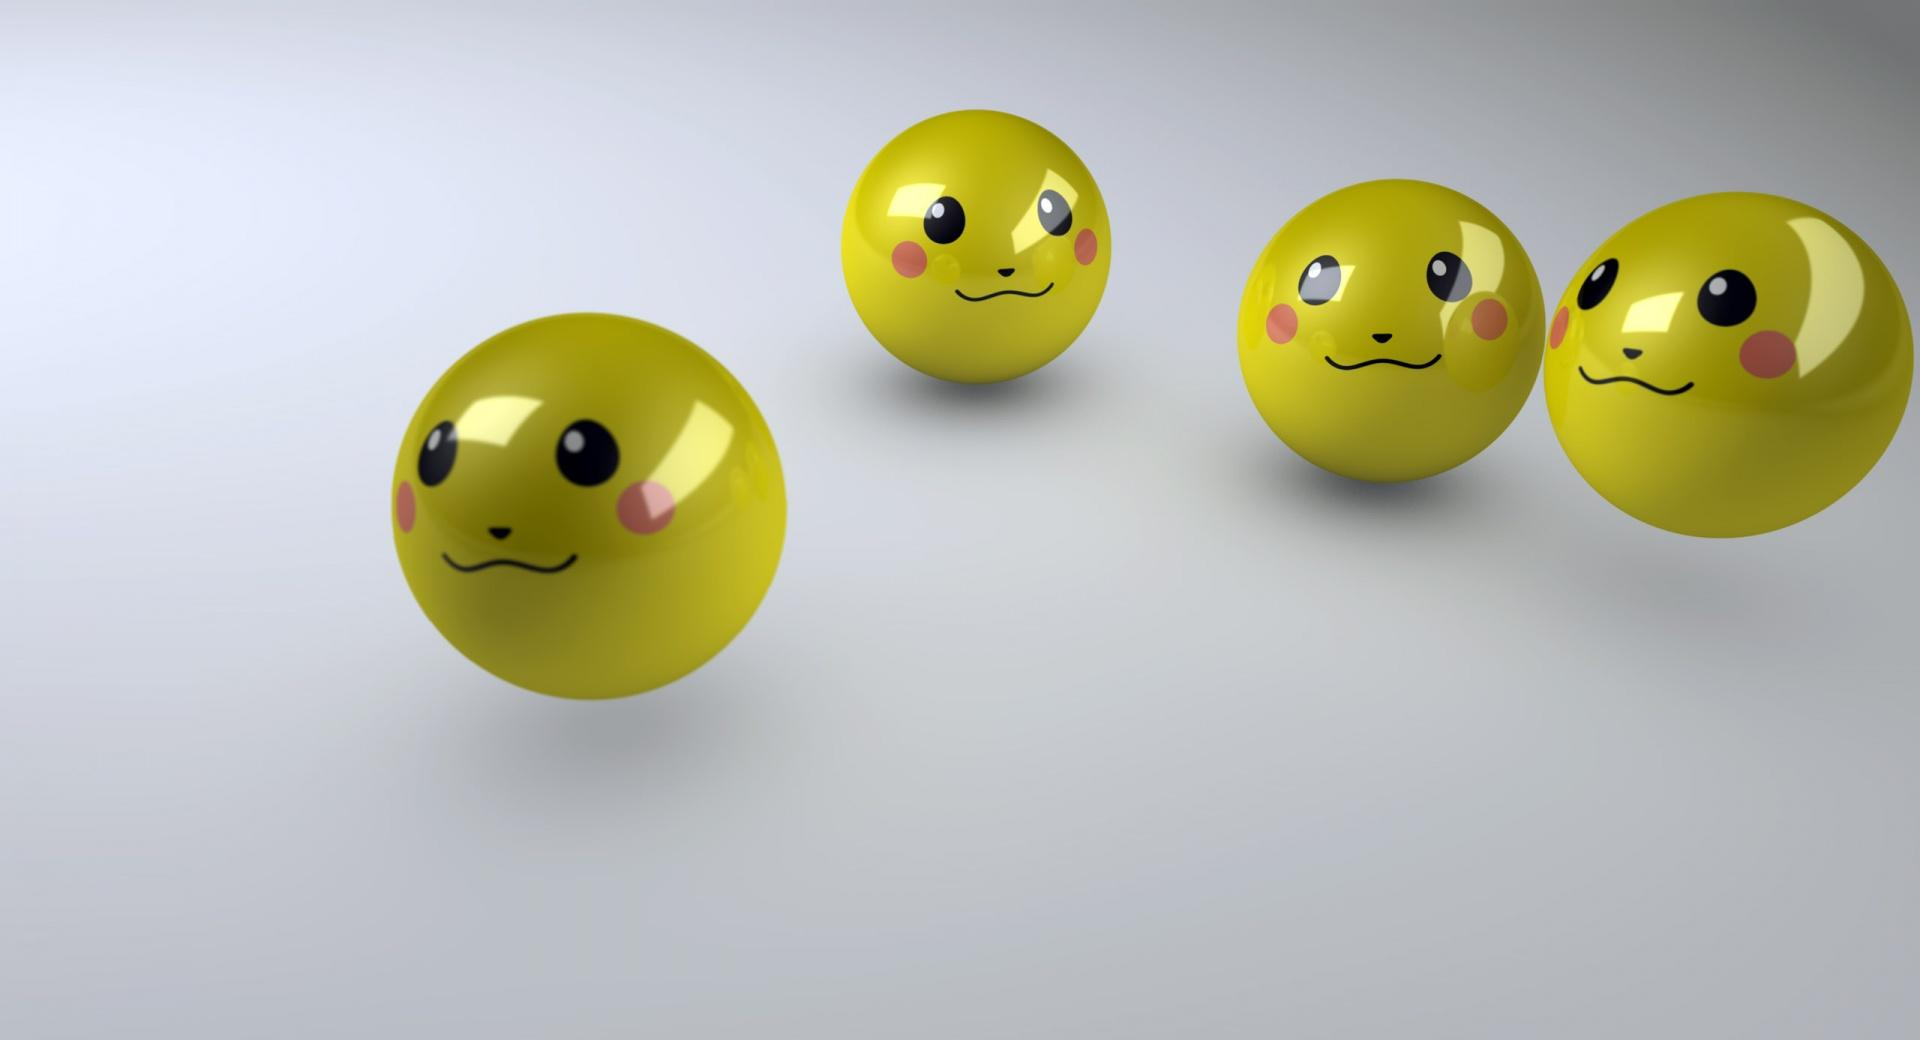 Smiley Faces 3D wallpapers HD quality